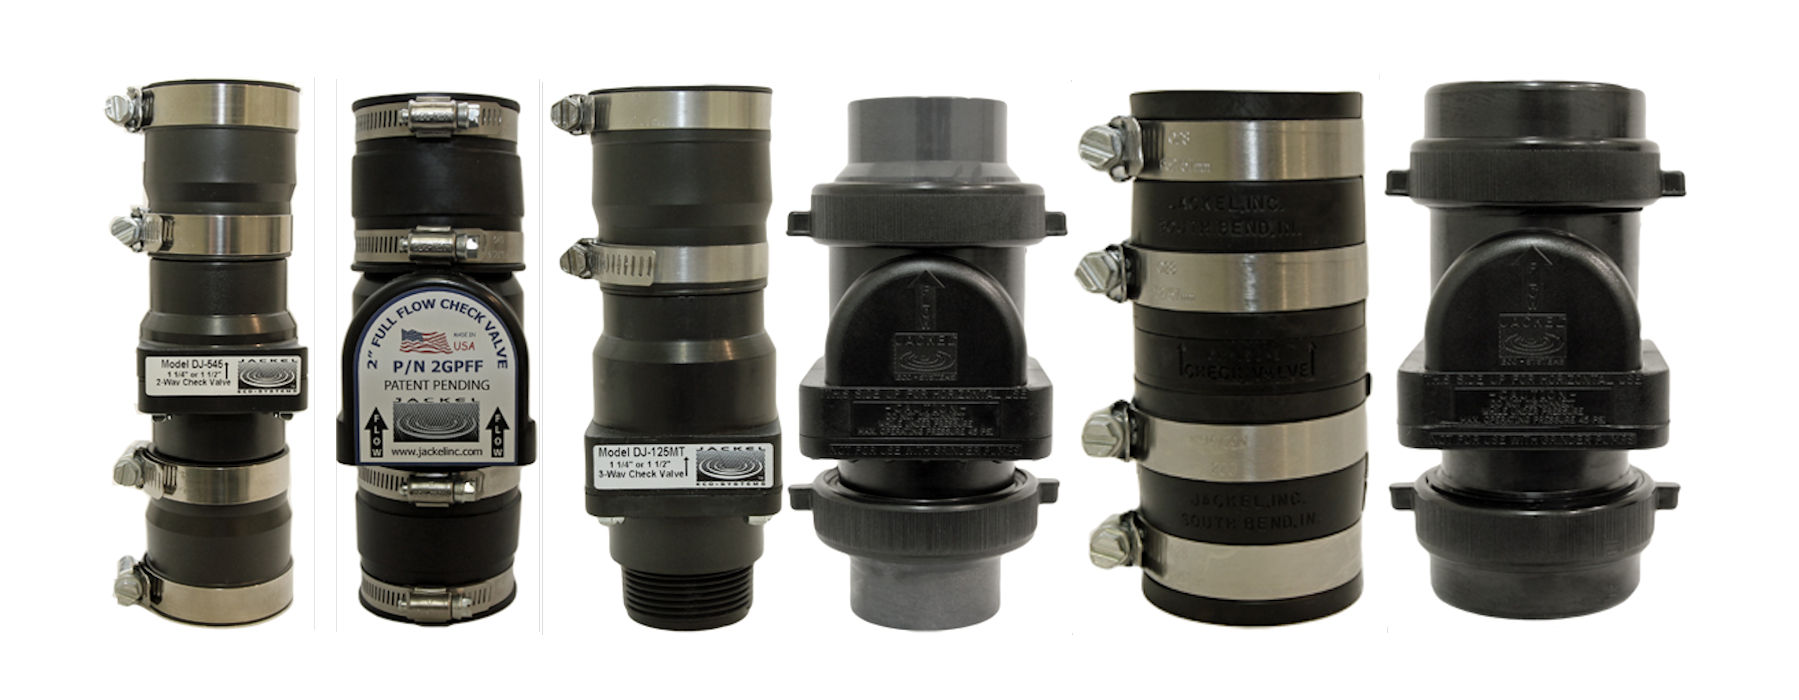 Jackel_Checkvalves